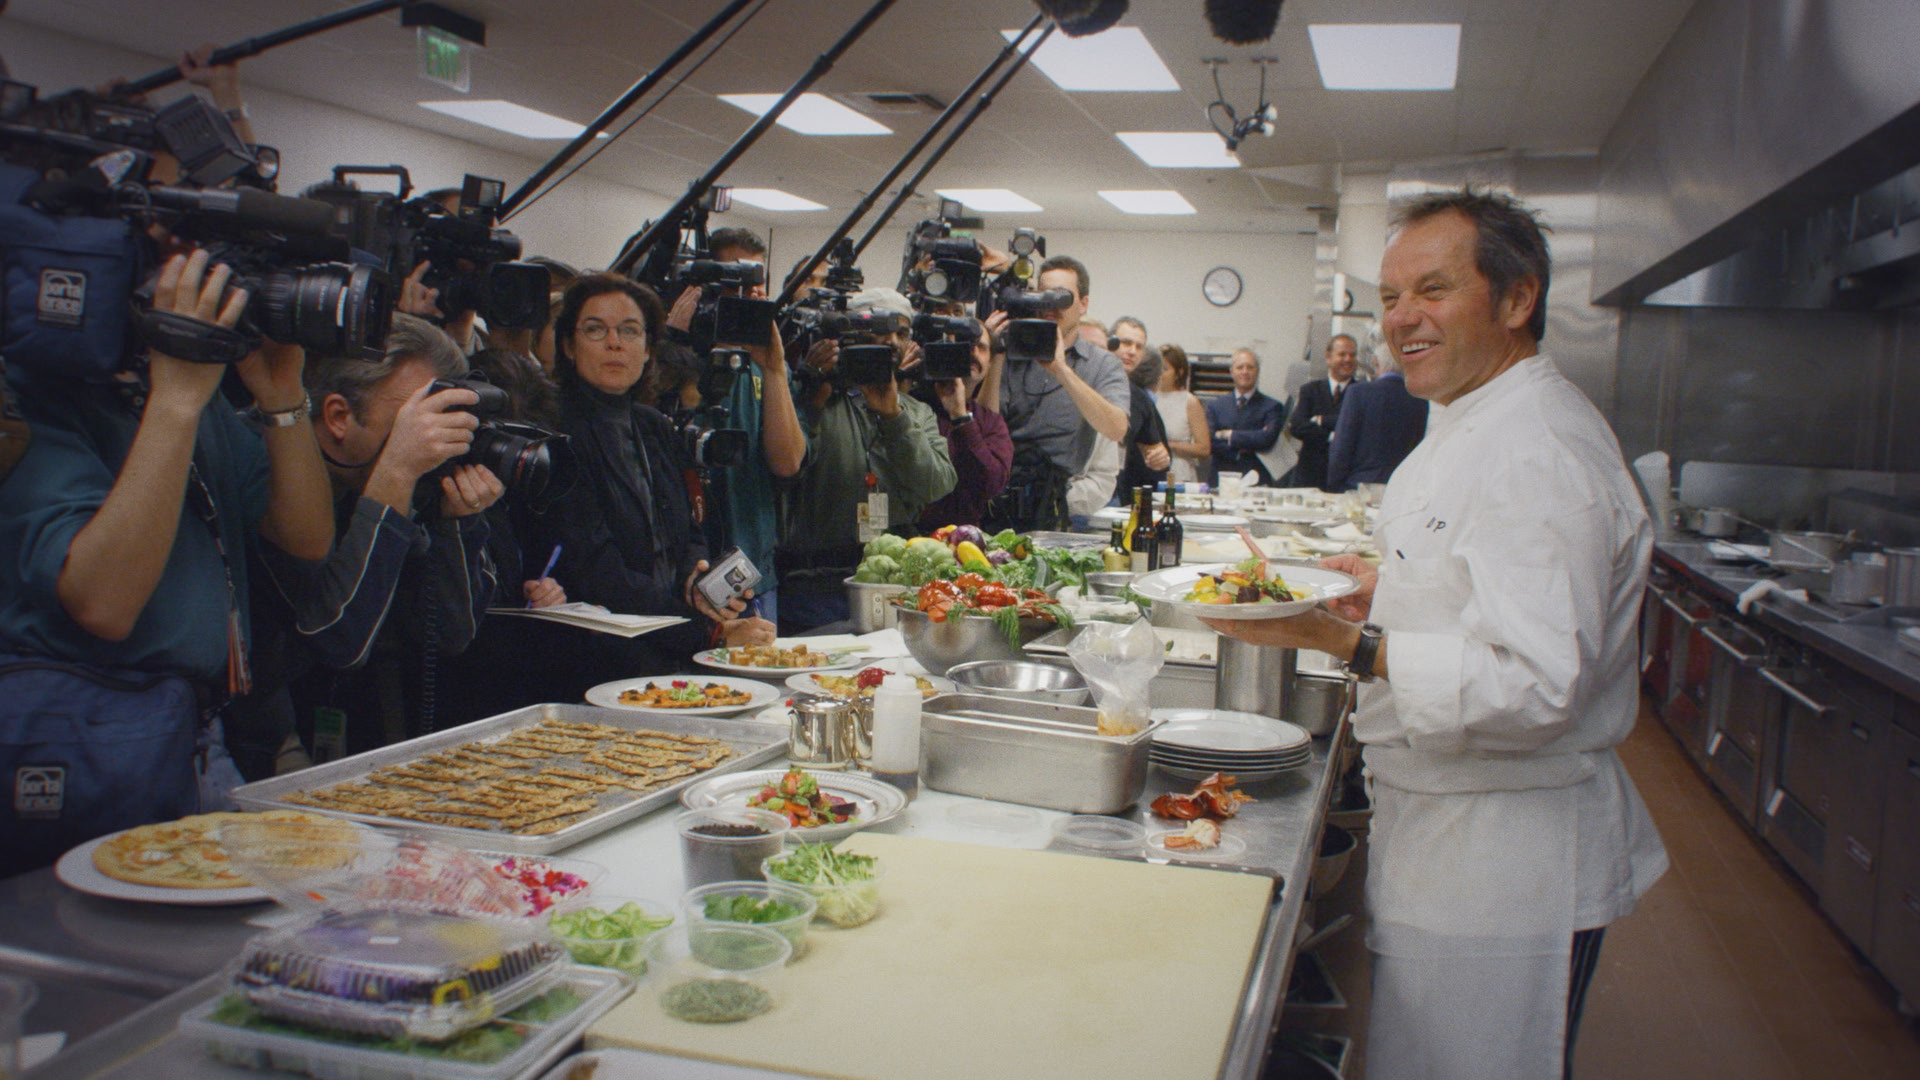 'Wolfgang' serves the dish on how Wolfgang Puck created the celebrity chef